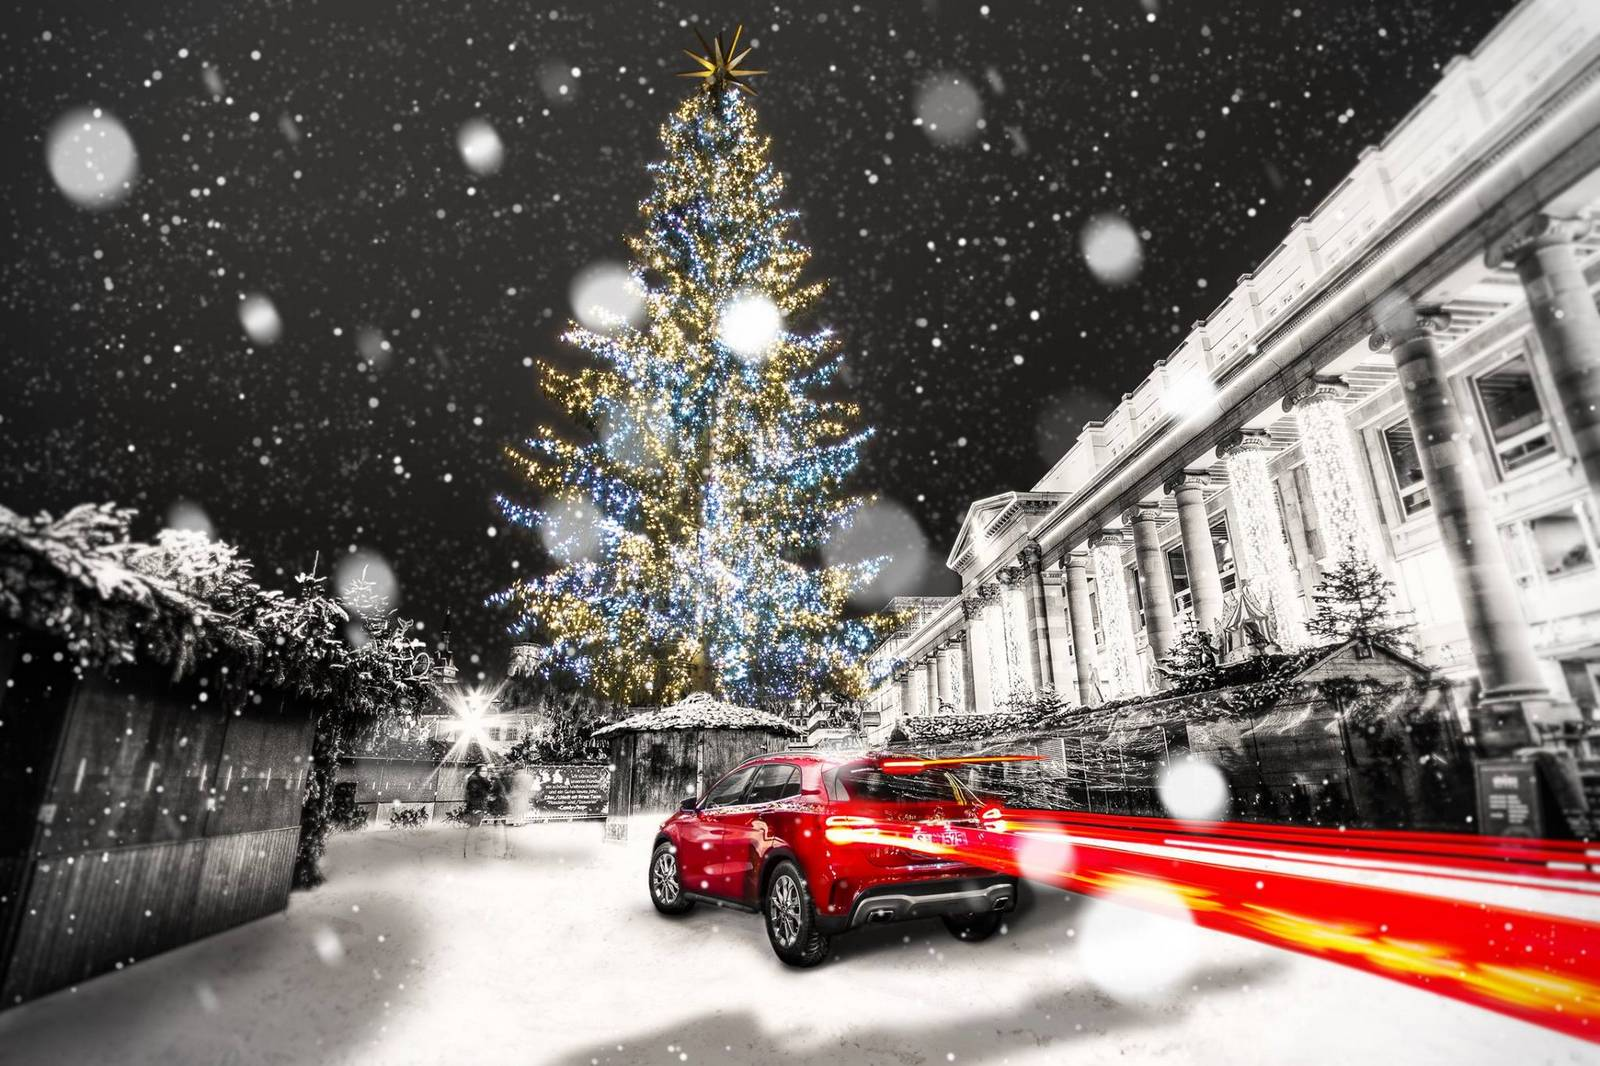 Mercedes G Tuning >> Photo Of The Day: Mercedes-Benz GLA in Christmas Glory! - GTspirit